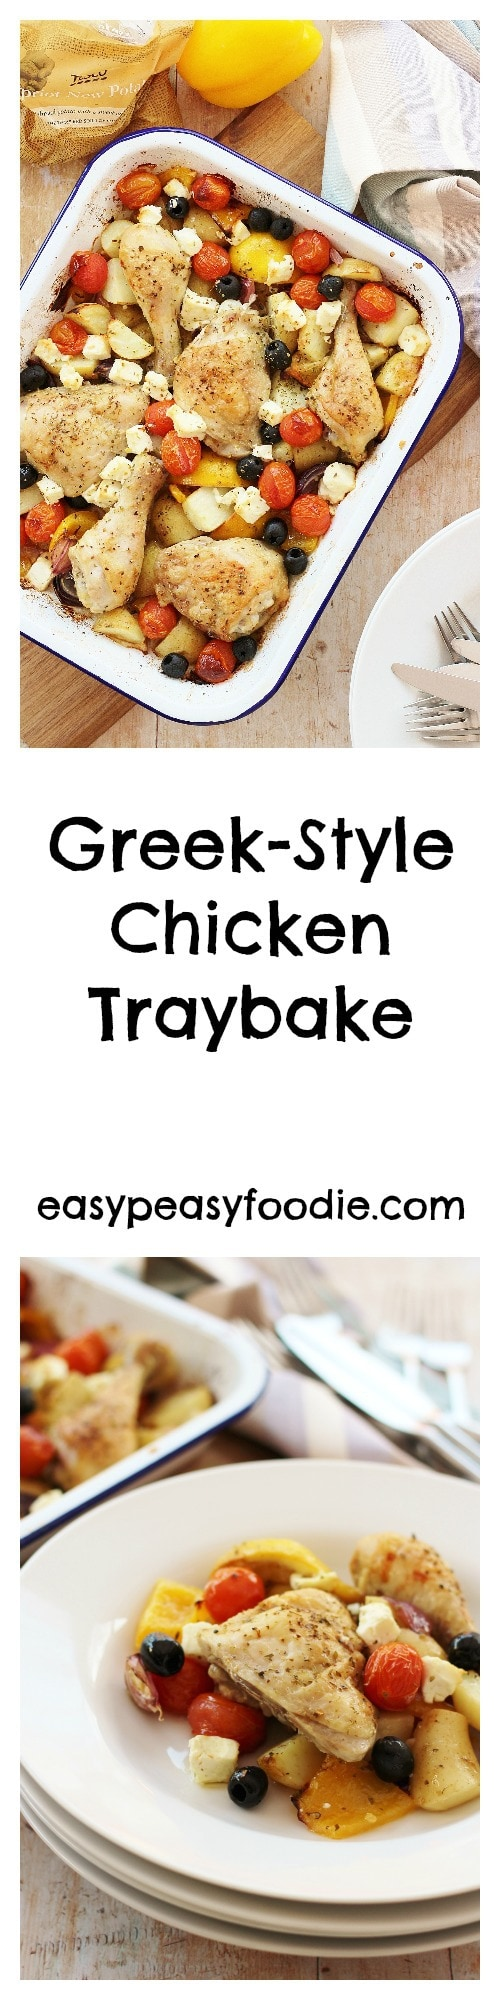 A simple midweek chicken dish, made with Tesco Cypriot New Potatoes, this Greek Style Chicken Traybake can be prepared in 10 minutes, making it perfect for busy days. #greekfood #traybake #chickentraybake #chickenthighs #greekchickentraybake #sheetpandinners #easydinners #healthydinners #familydinners #midweekmeals #easypeasyfoodie #cookblogshare #freefromgang